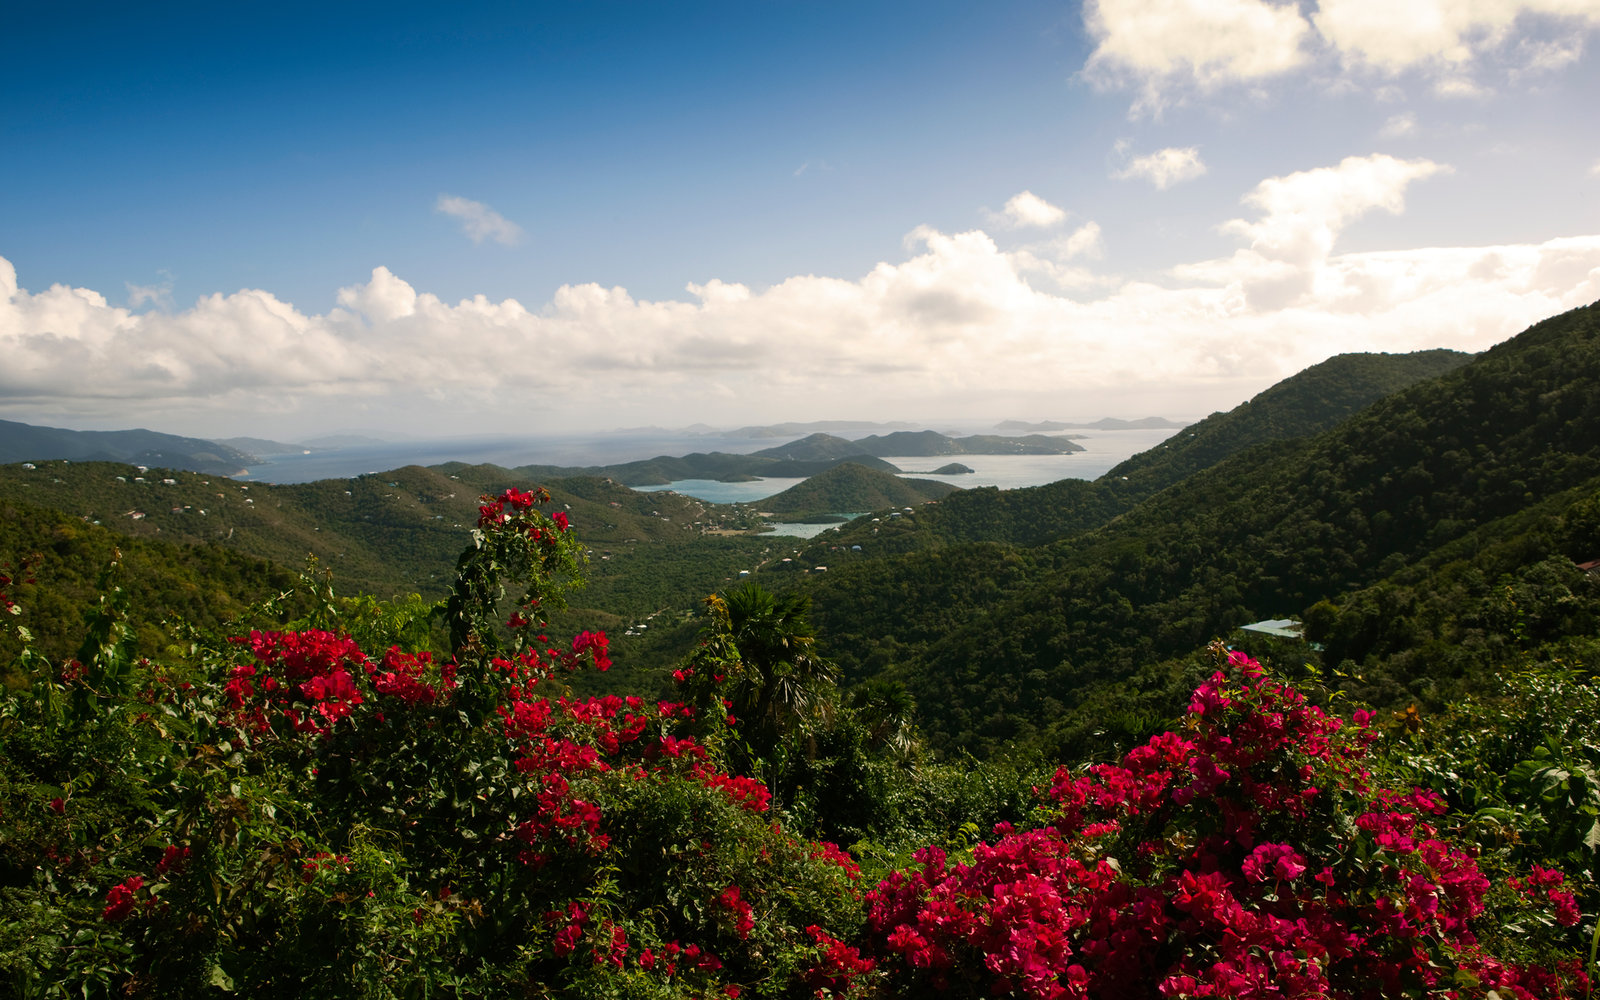 No. 5: St. John, U.S. Virgin Islands